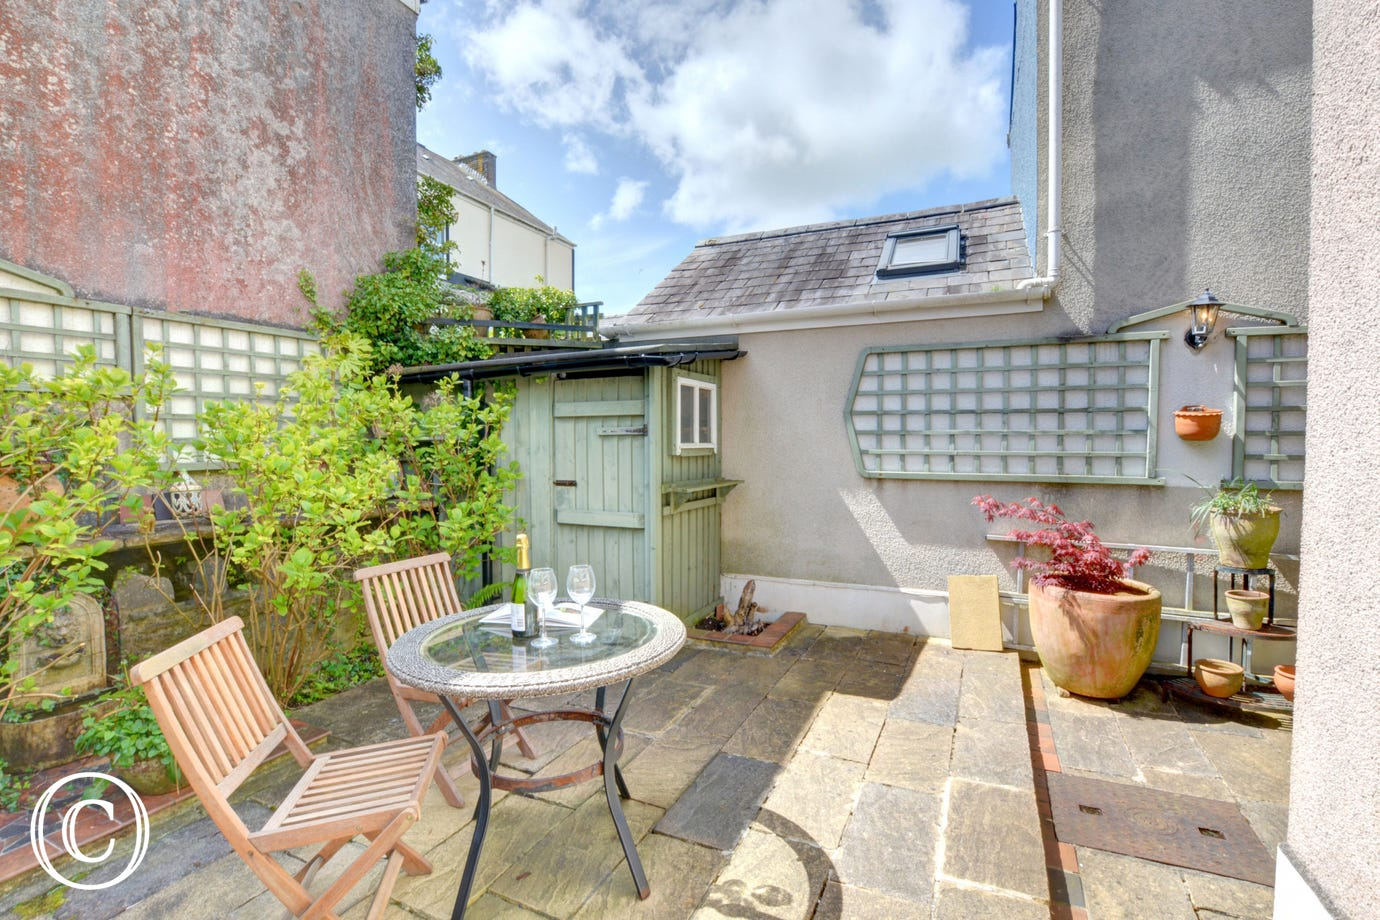 Outdoor space at this Tenby Cottage, with terrace with table & chairs